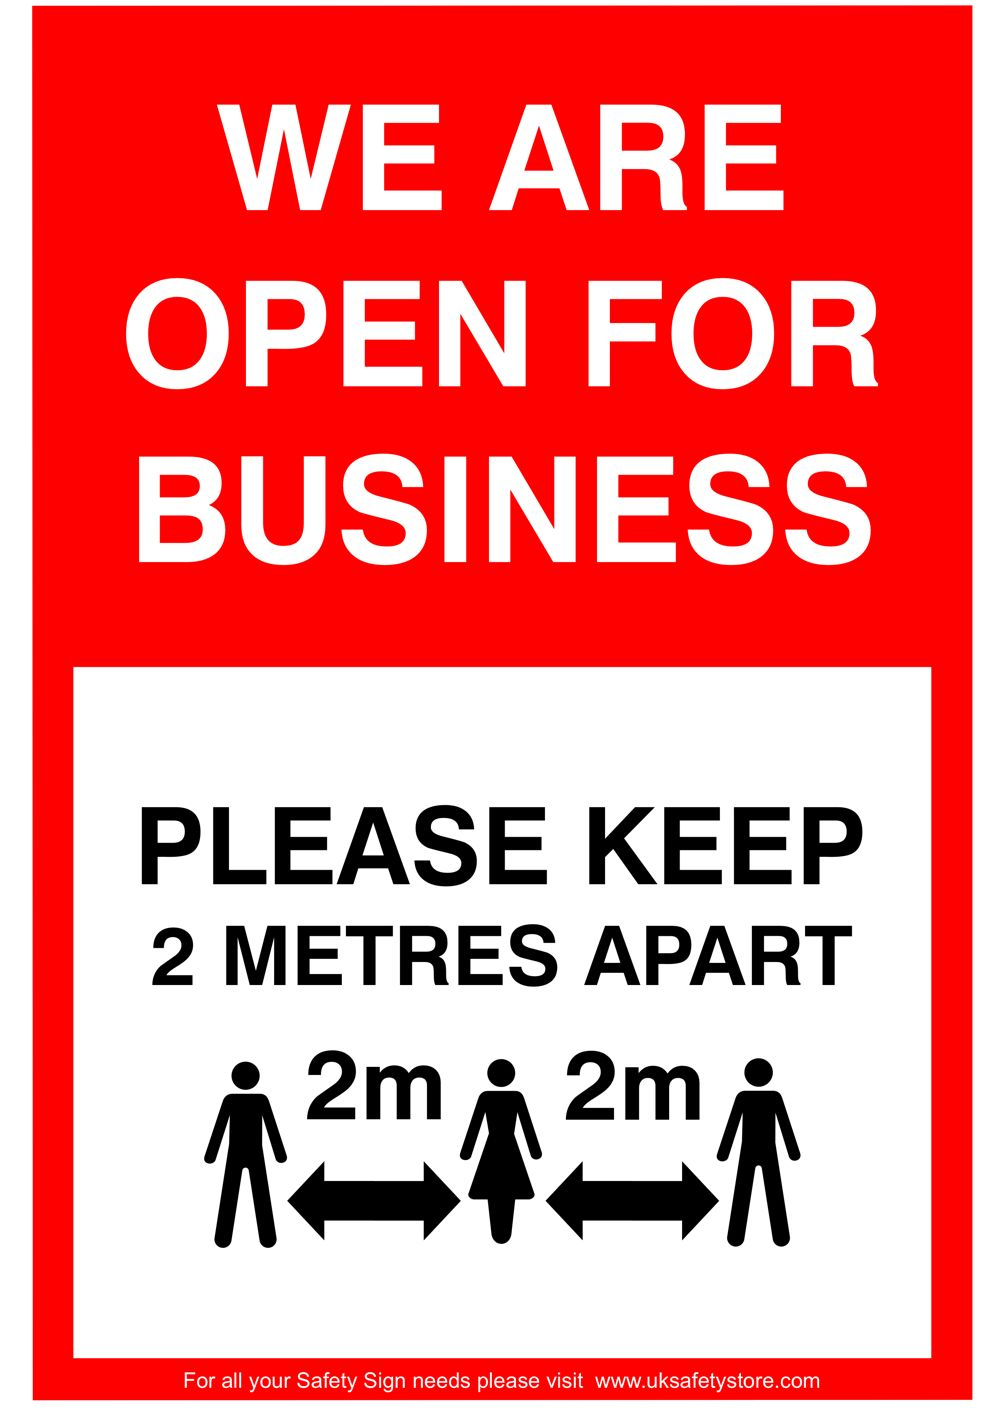 Free Social Distancing Sign Template - We are open for business Sign